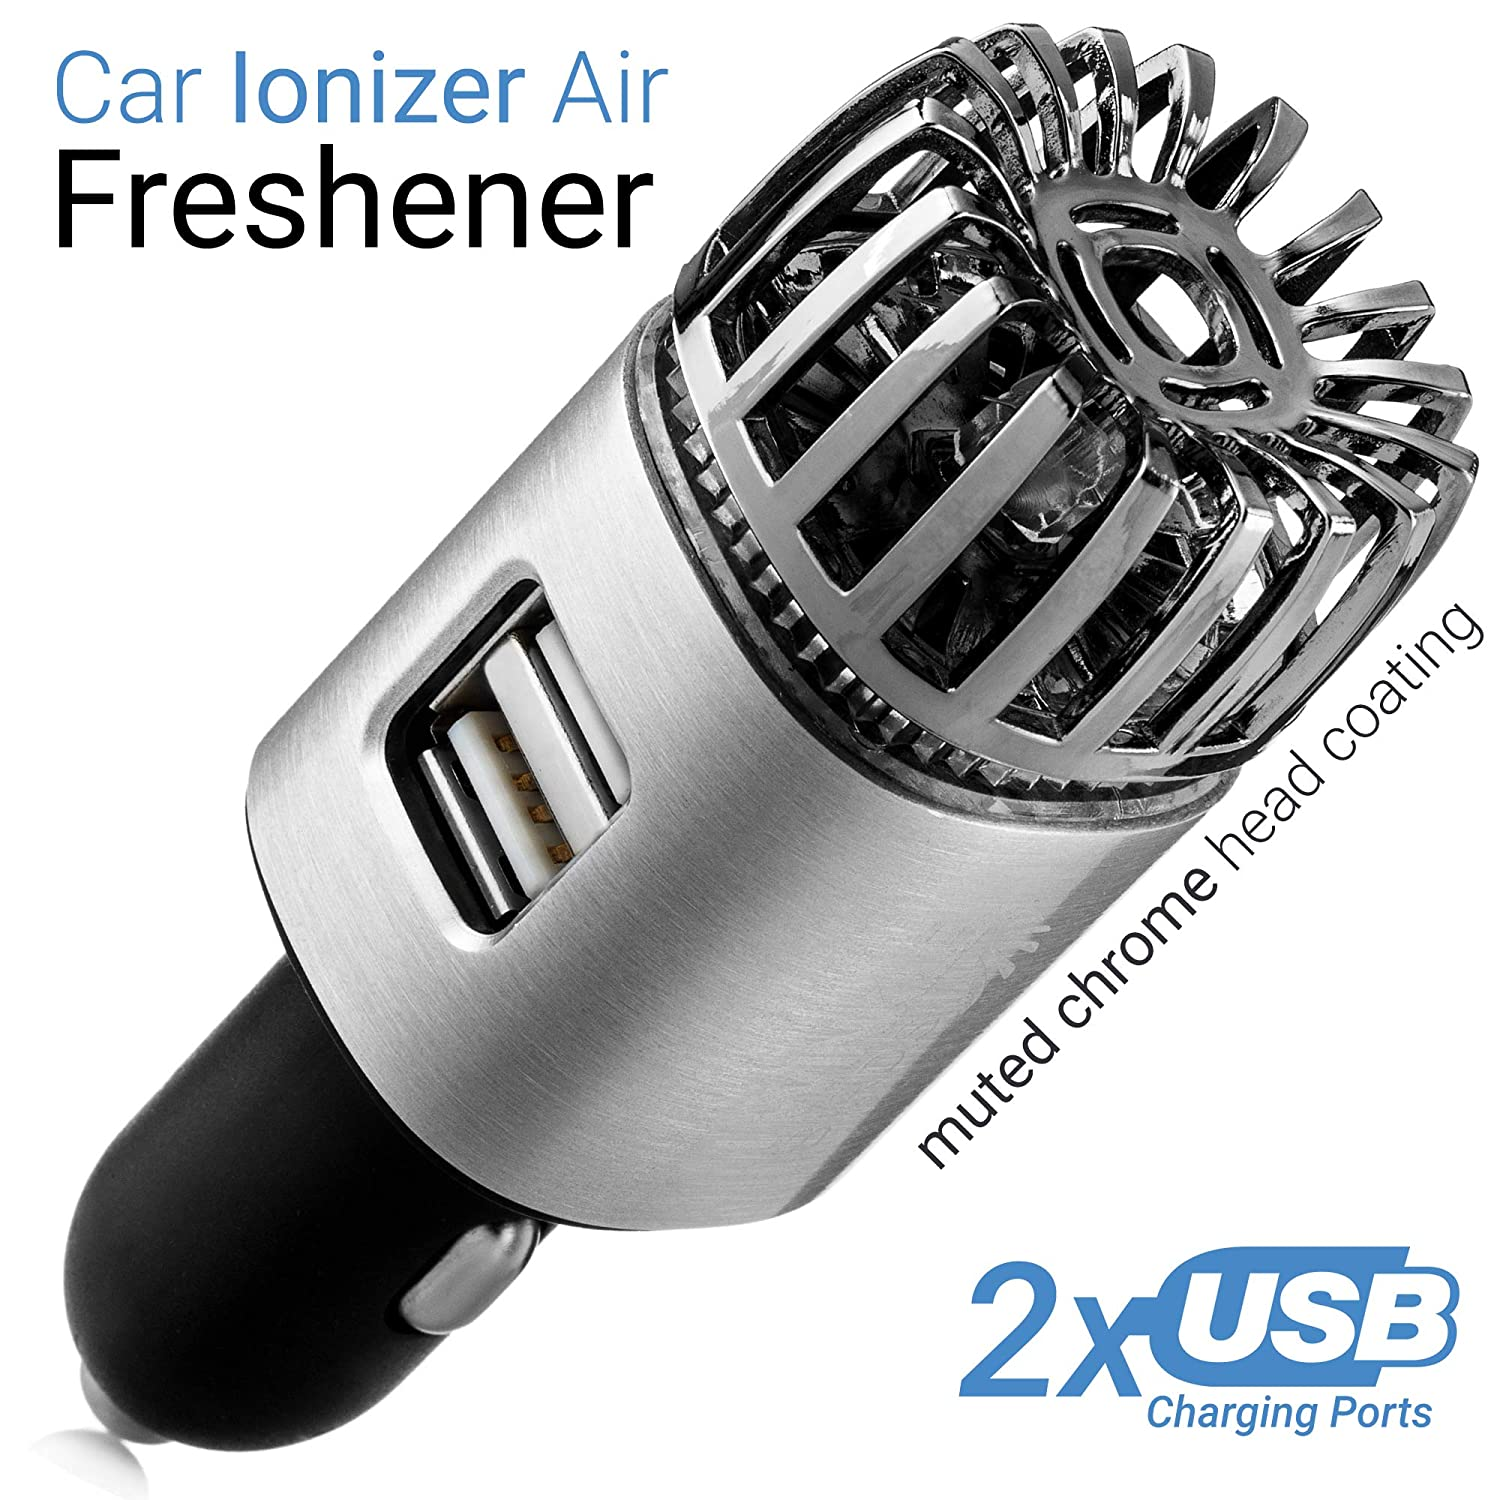 TwinkleBirds Car Air Purifier Ionizer - 12V Plug-in Car Air Freshener Ionic Deodorizer with 2.1 Amp Dual USB Charger - Smoke Smell, Pet and Food Odors, Allergens Eliminator for Car (Matte Silver)